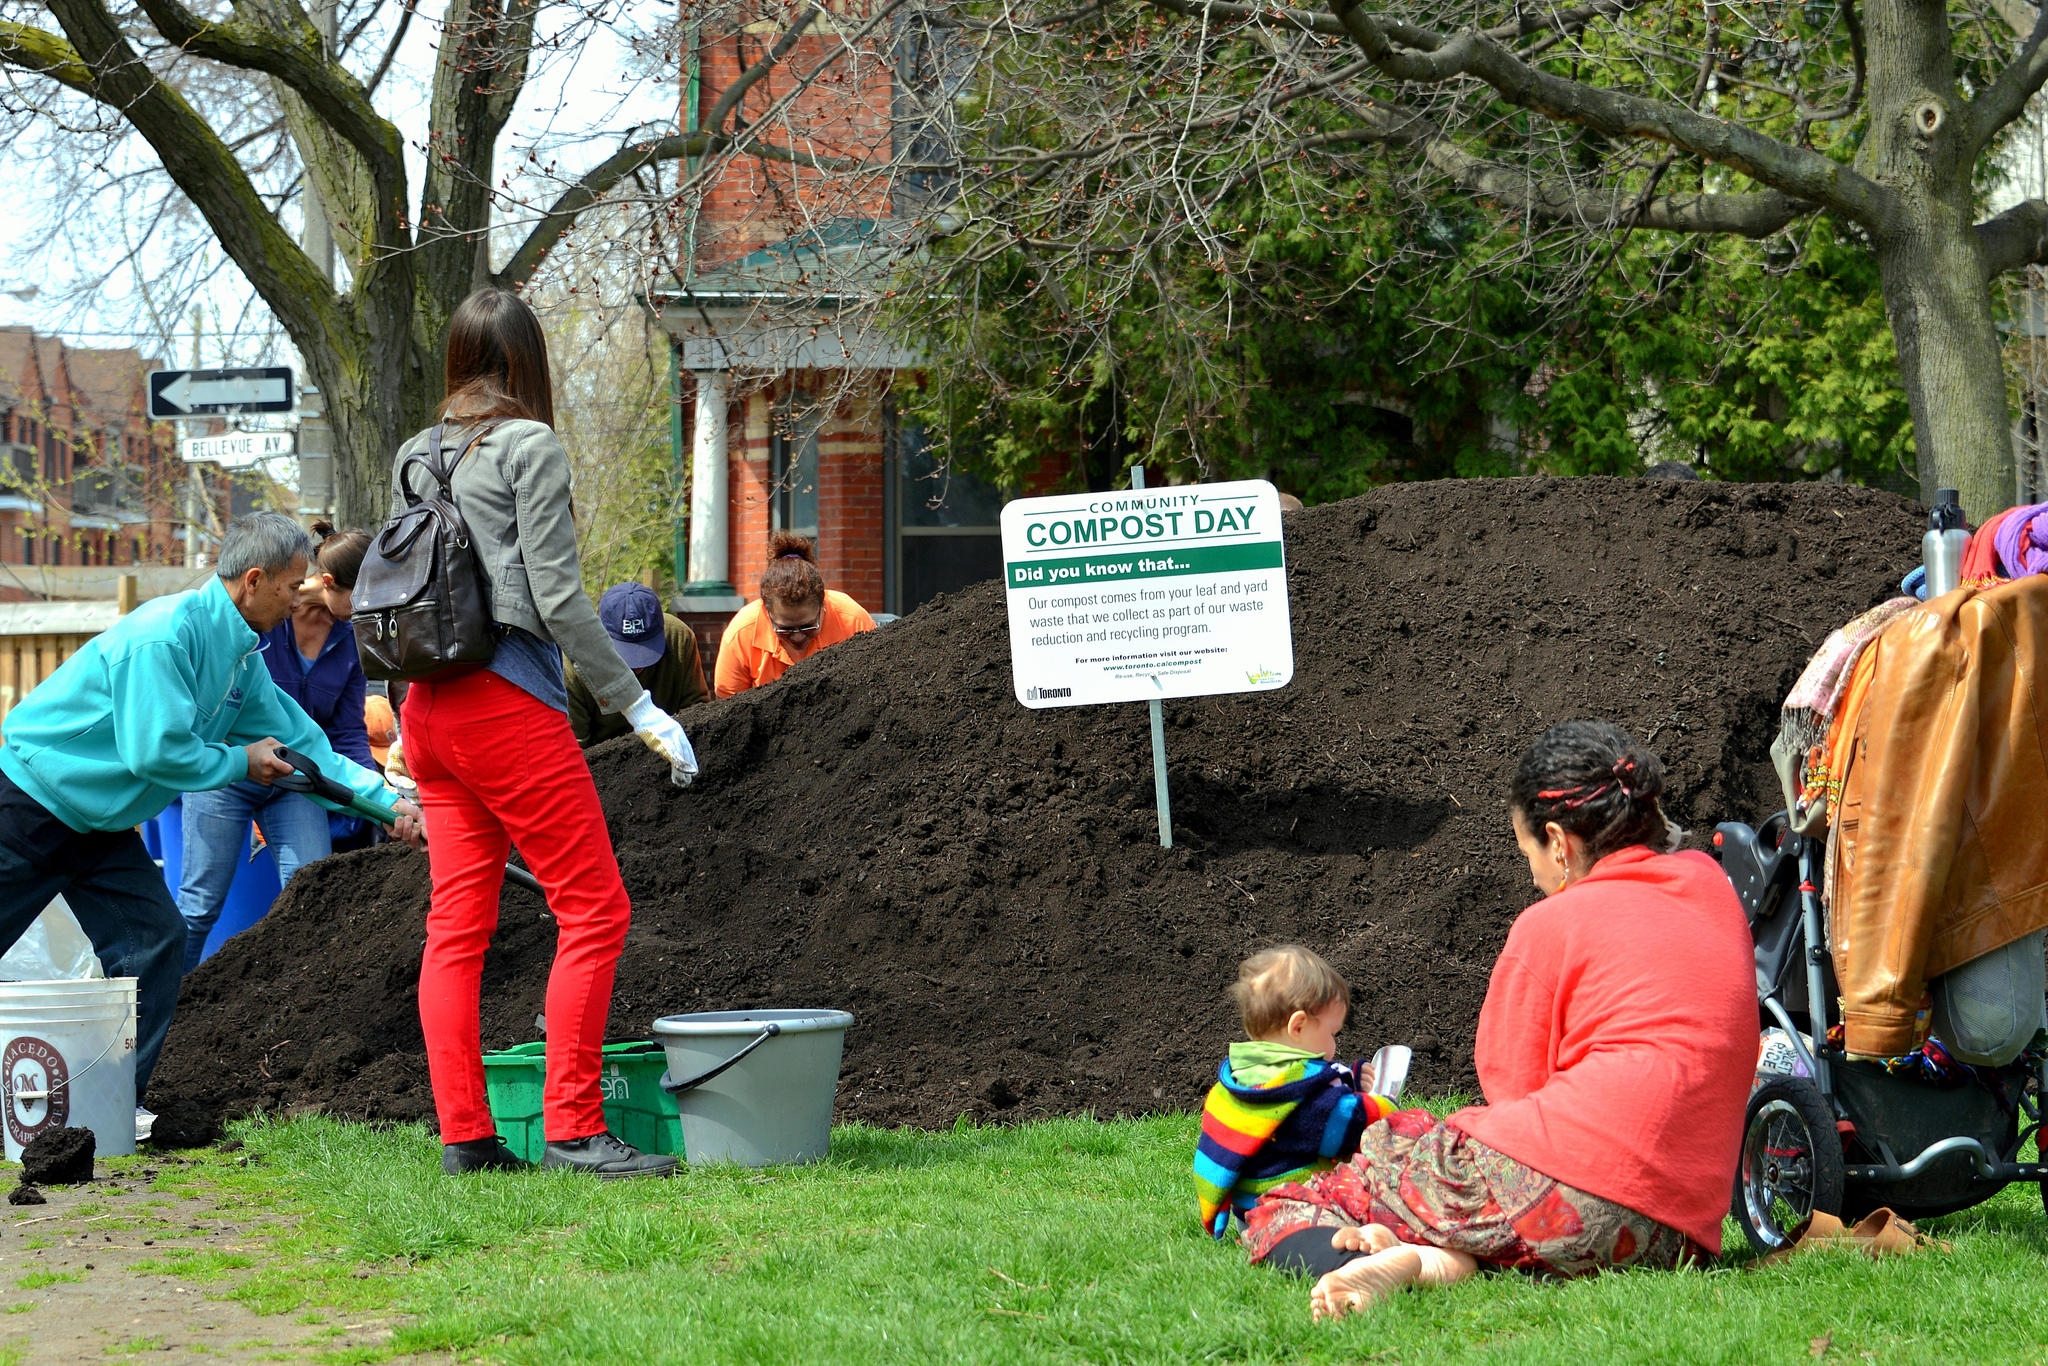 City of Toronto compost program